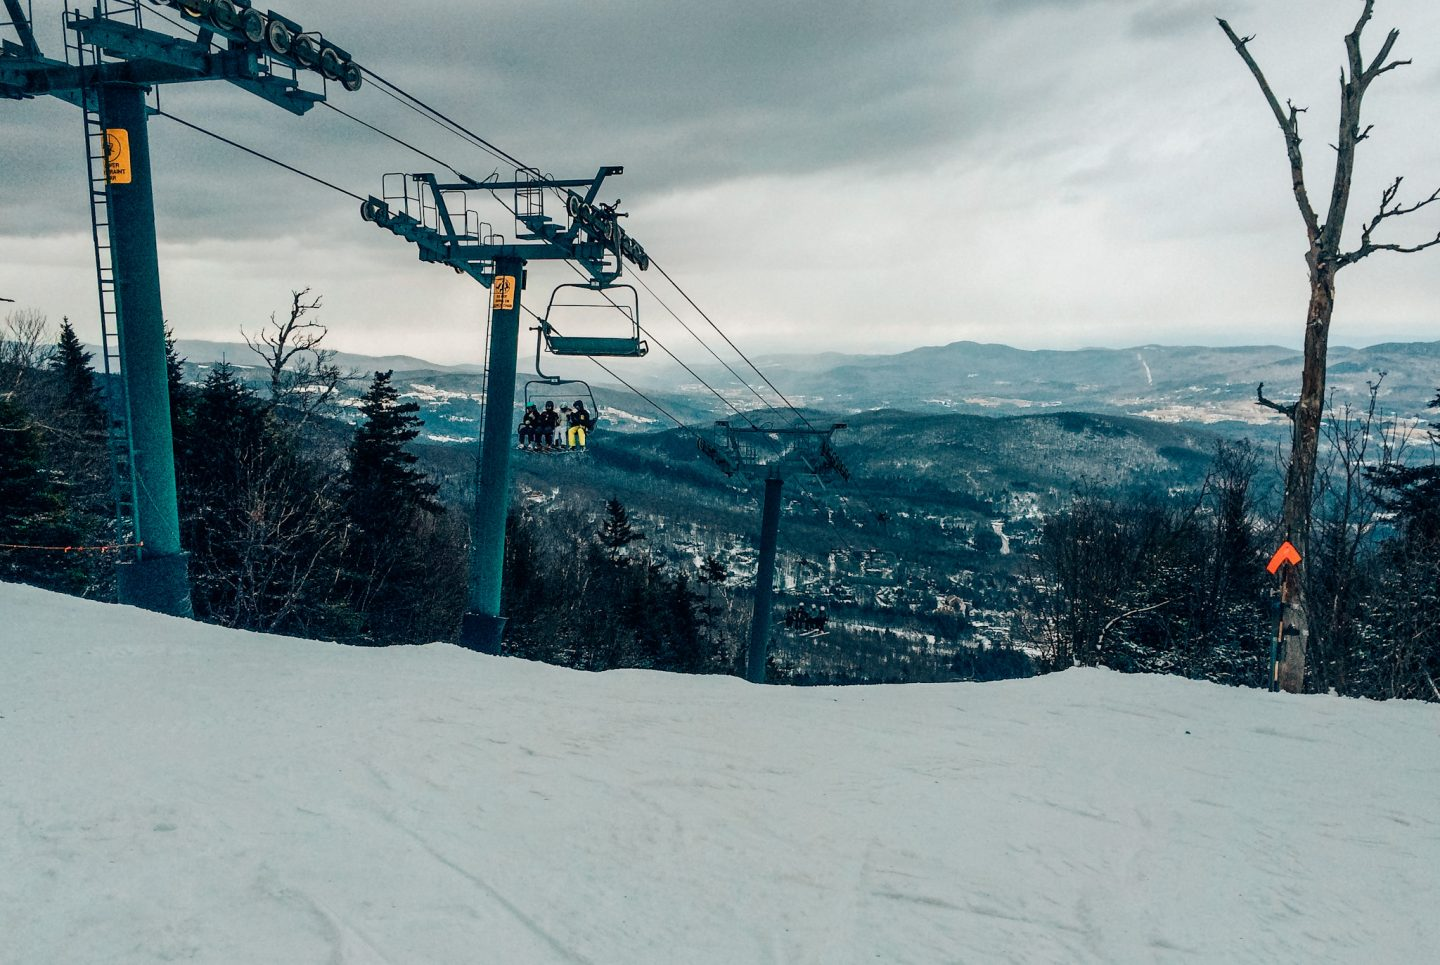 Best ski resorts in New England chairlift